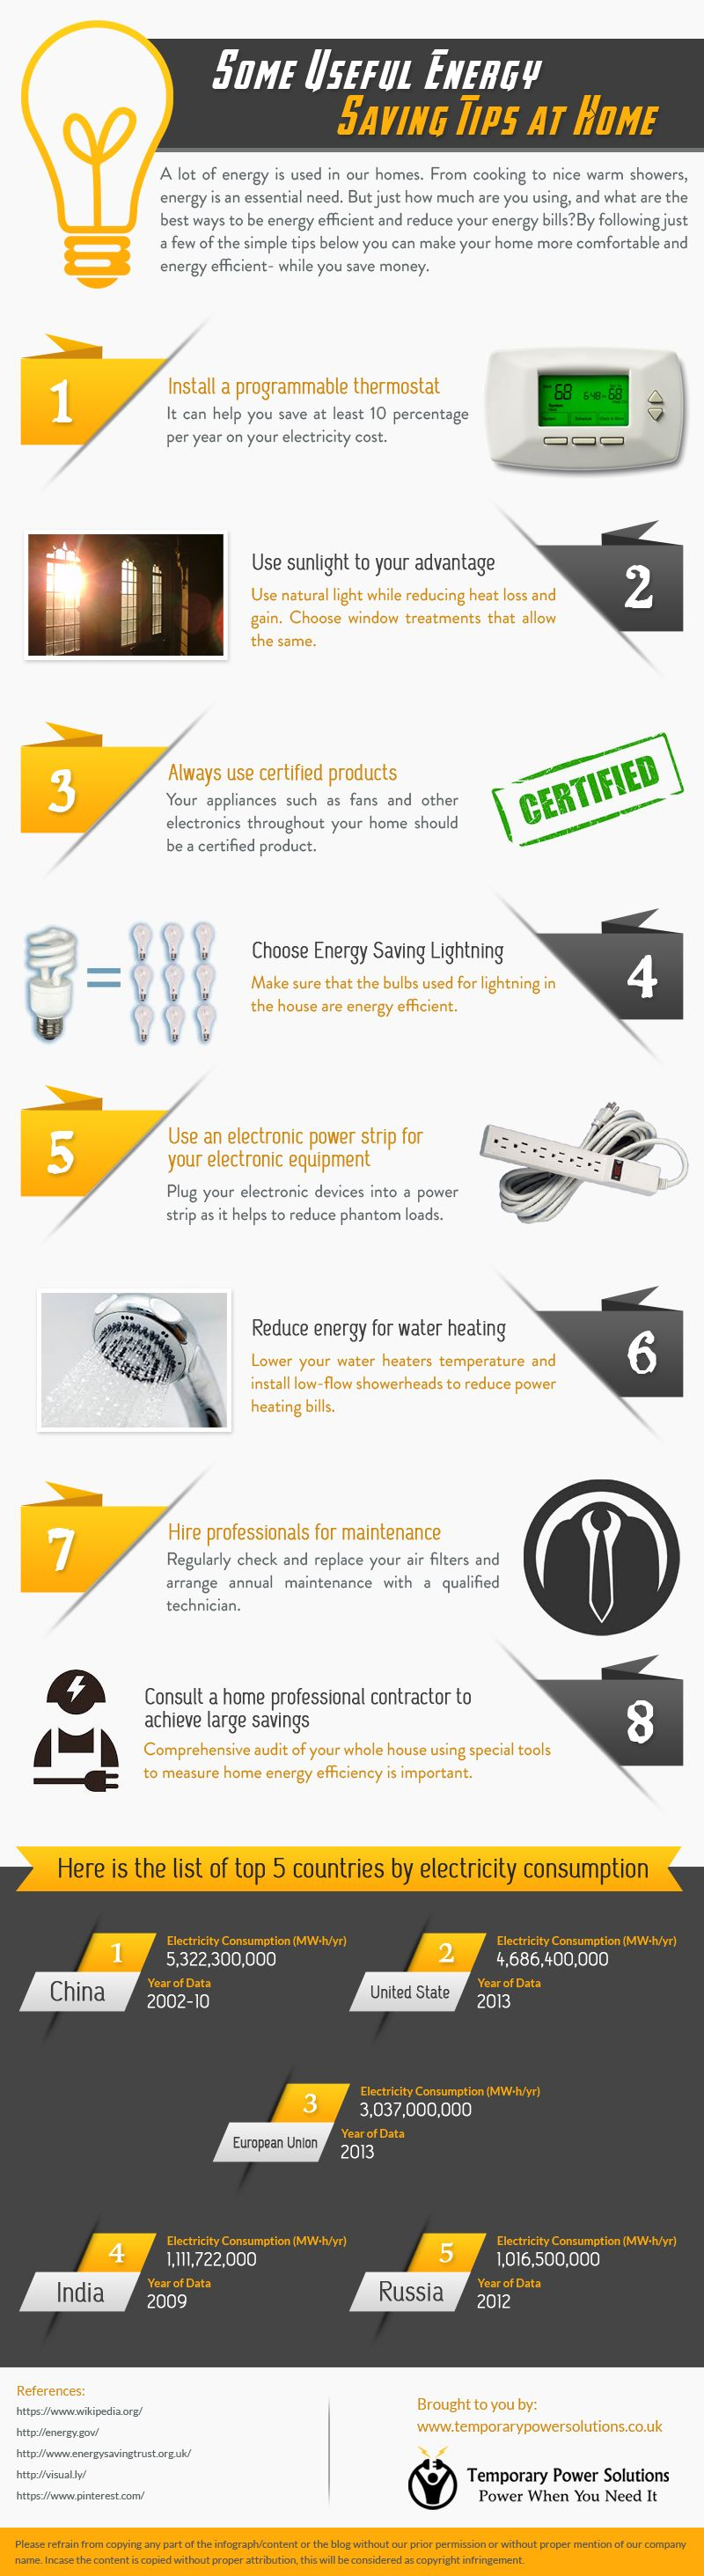 Some Useful Energy Saving Tips at Home #infographic